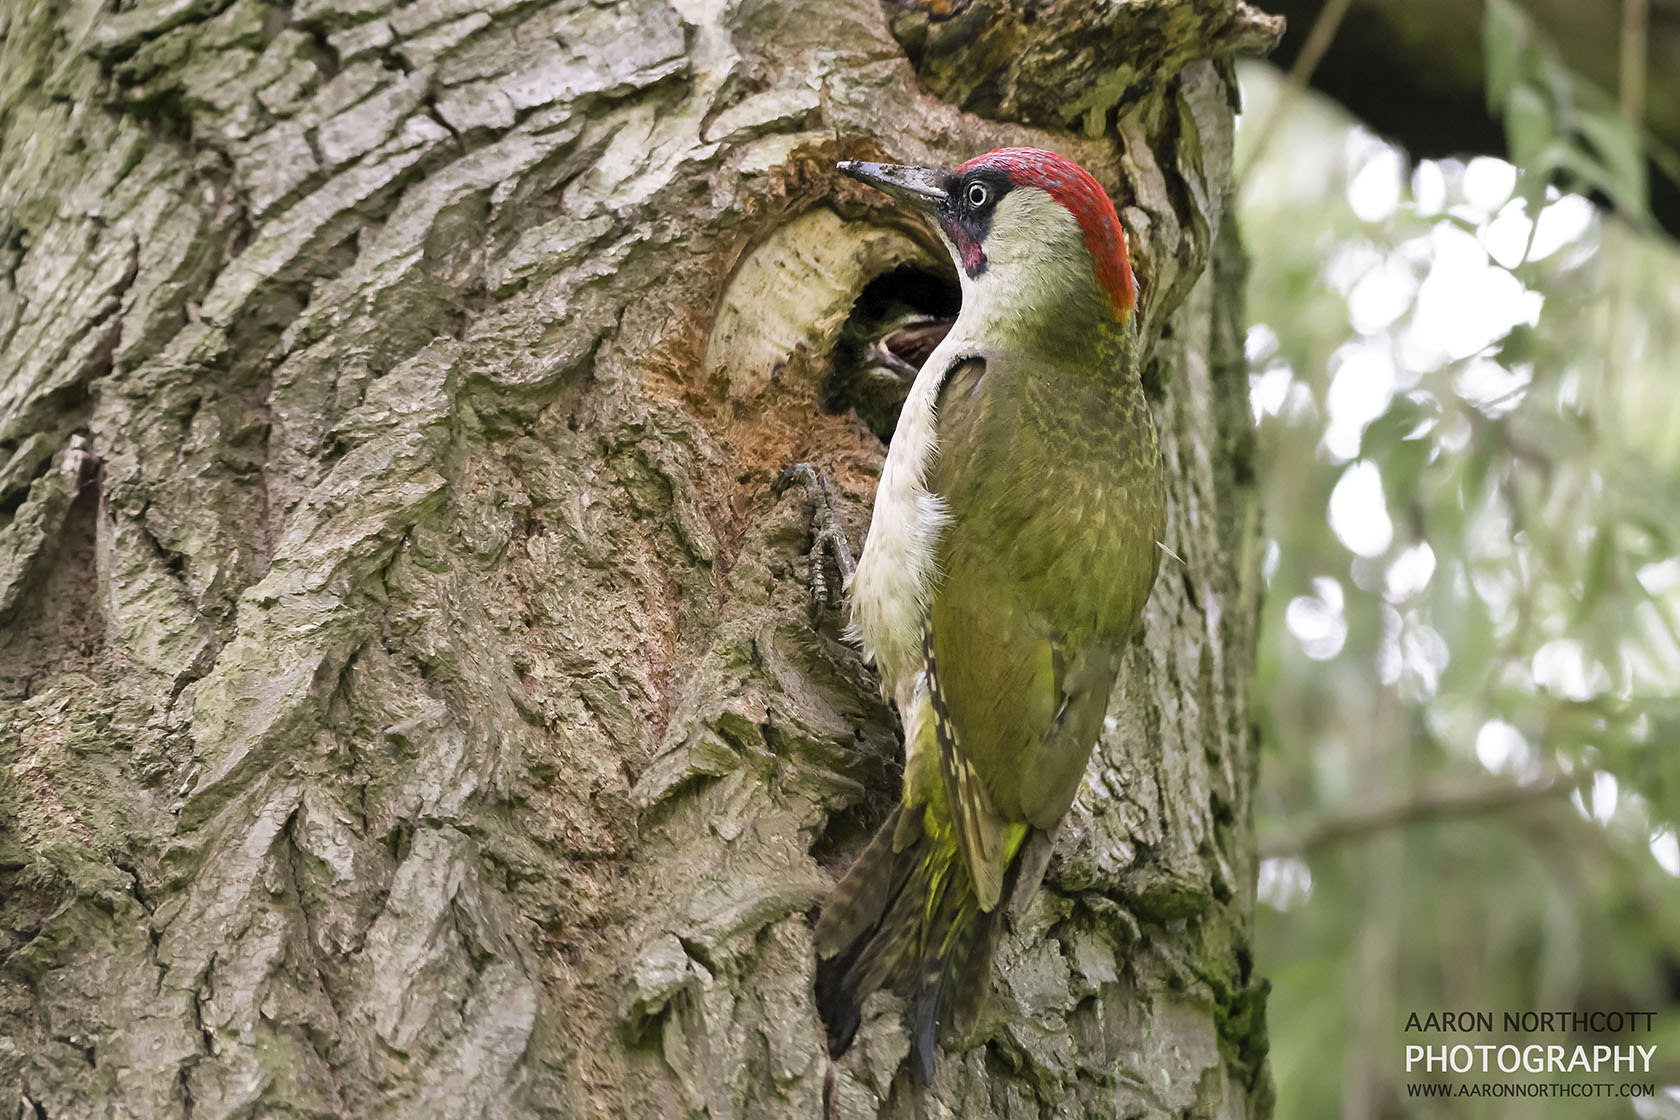 A Green Woodpecker feeds it's young hiding inside the nest.